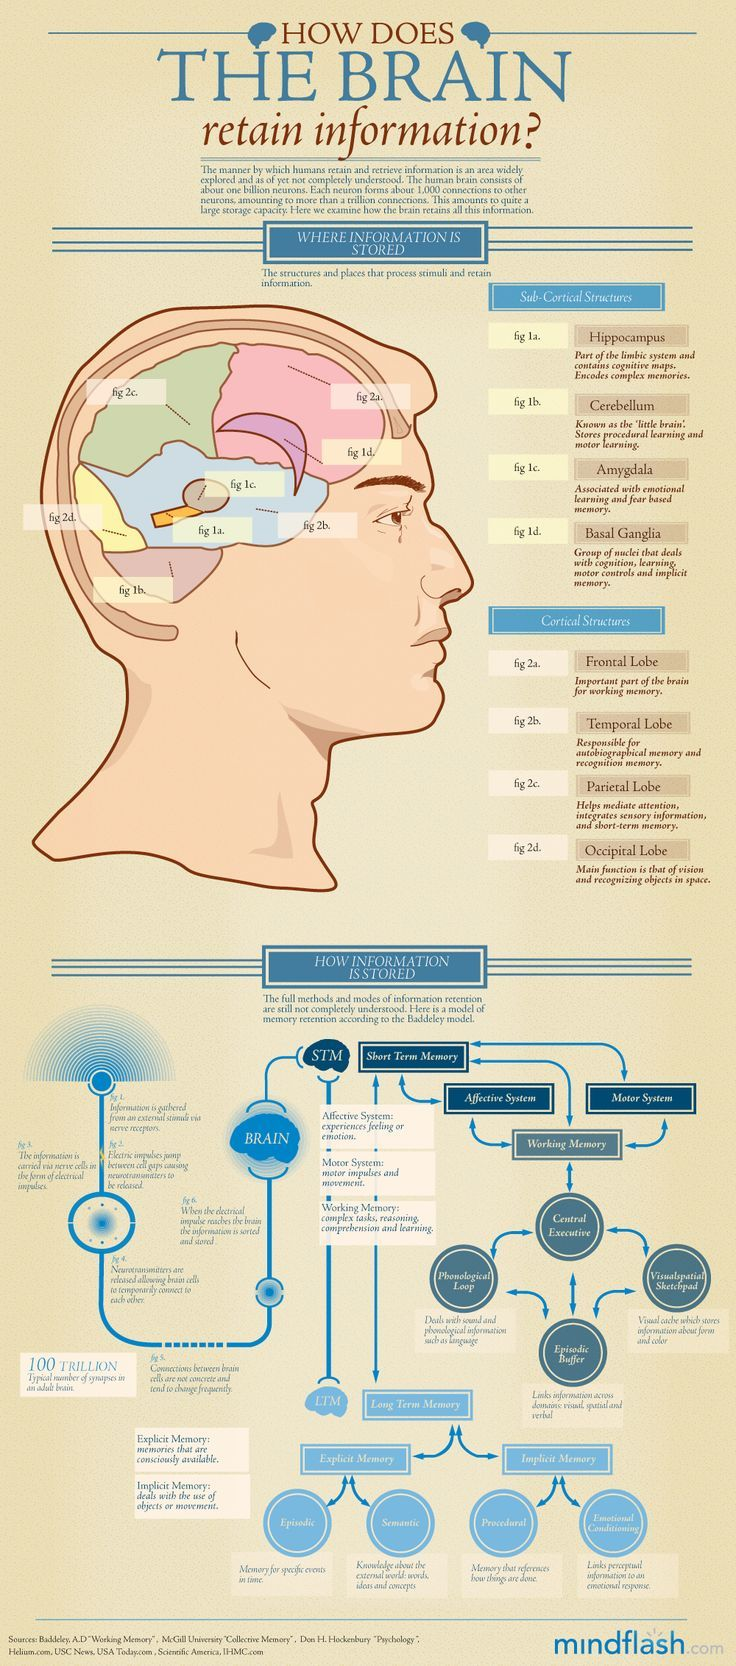 How does the brain retain information. (More information for me to retain.) :)